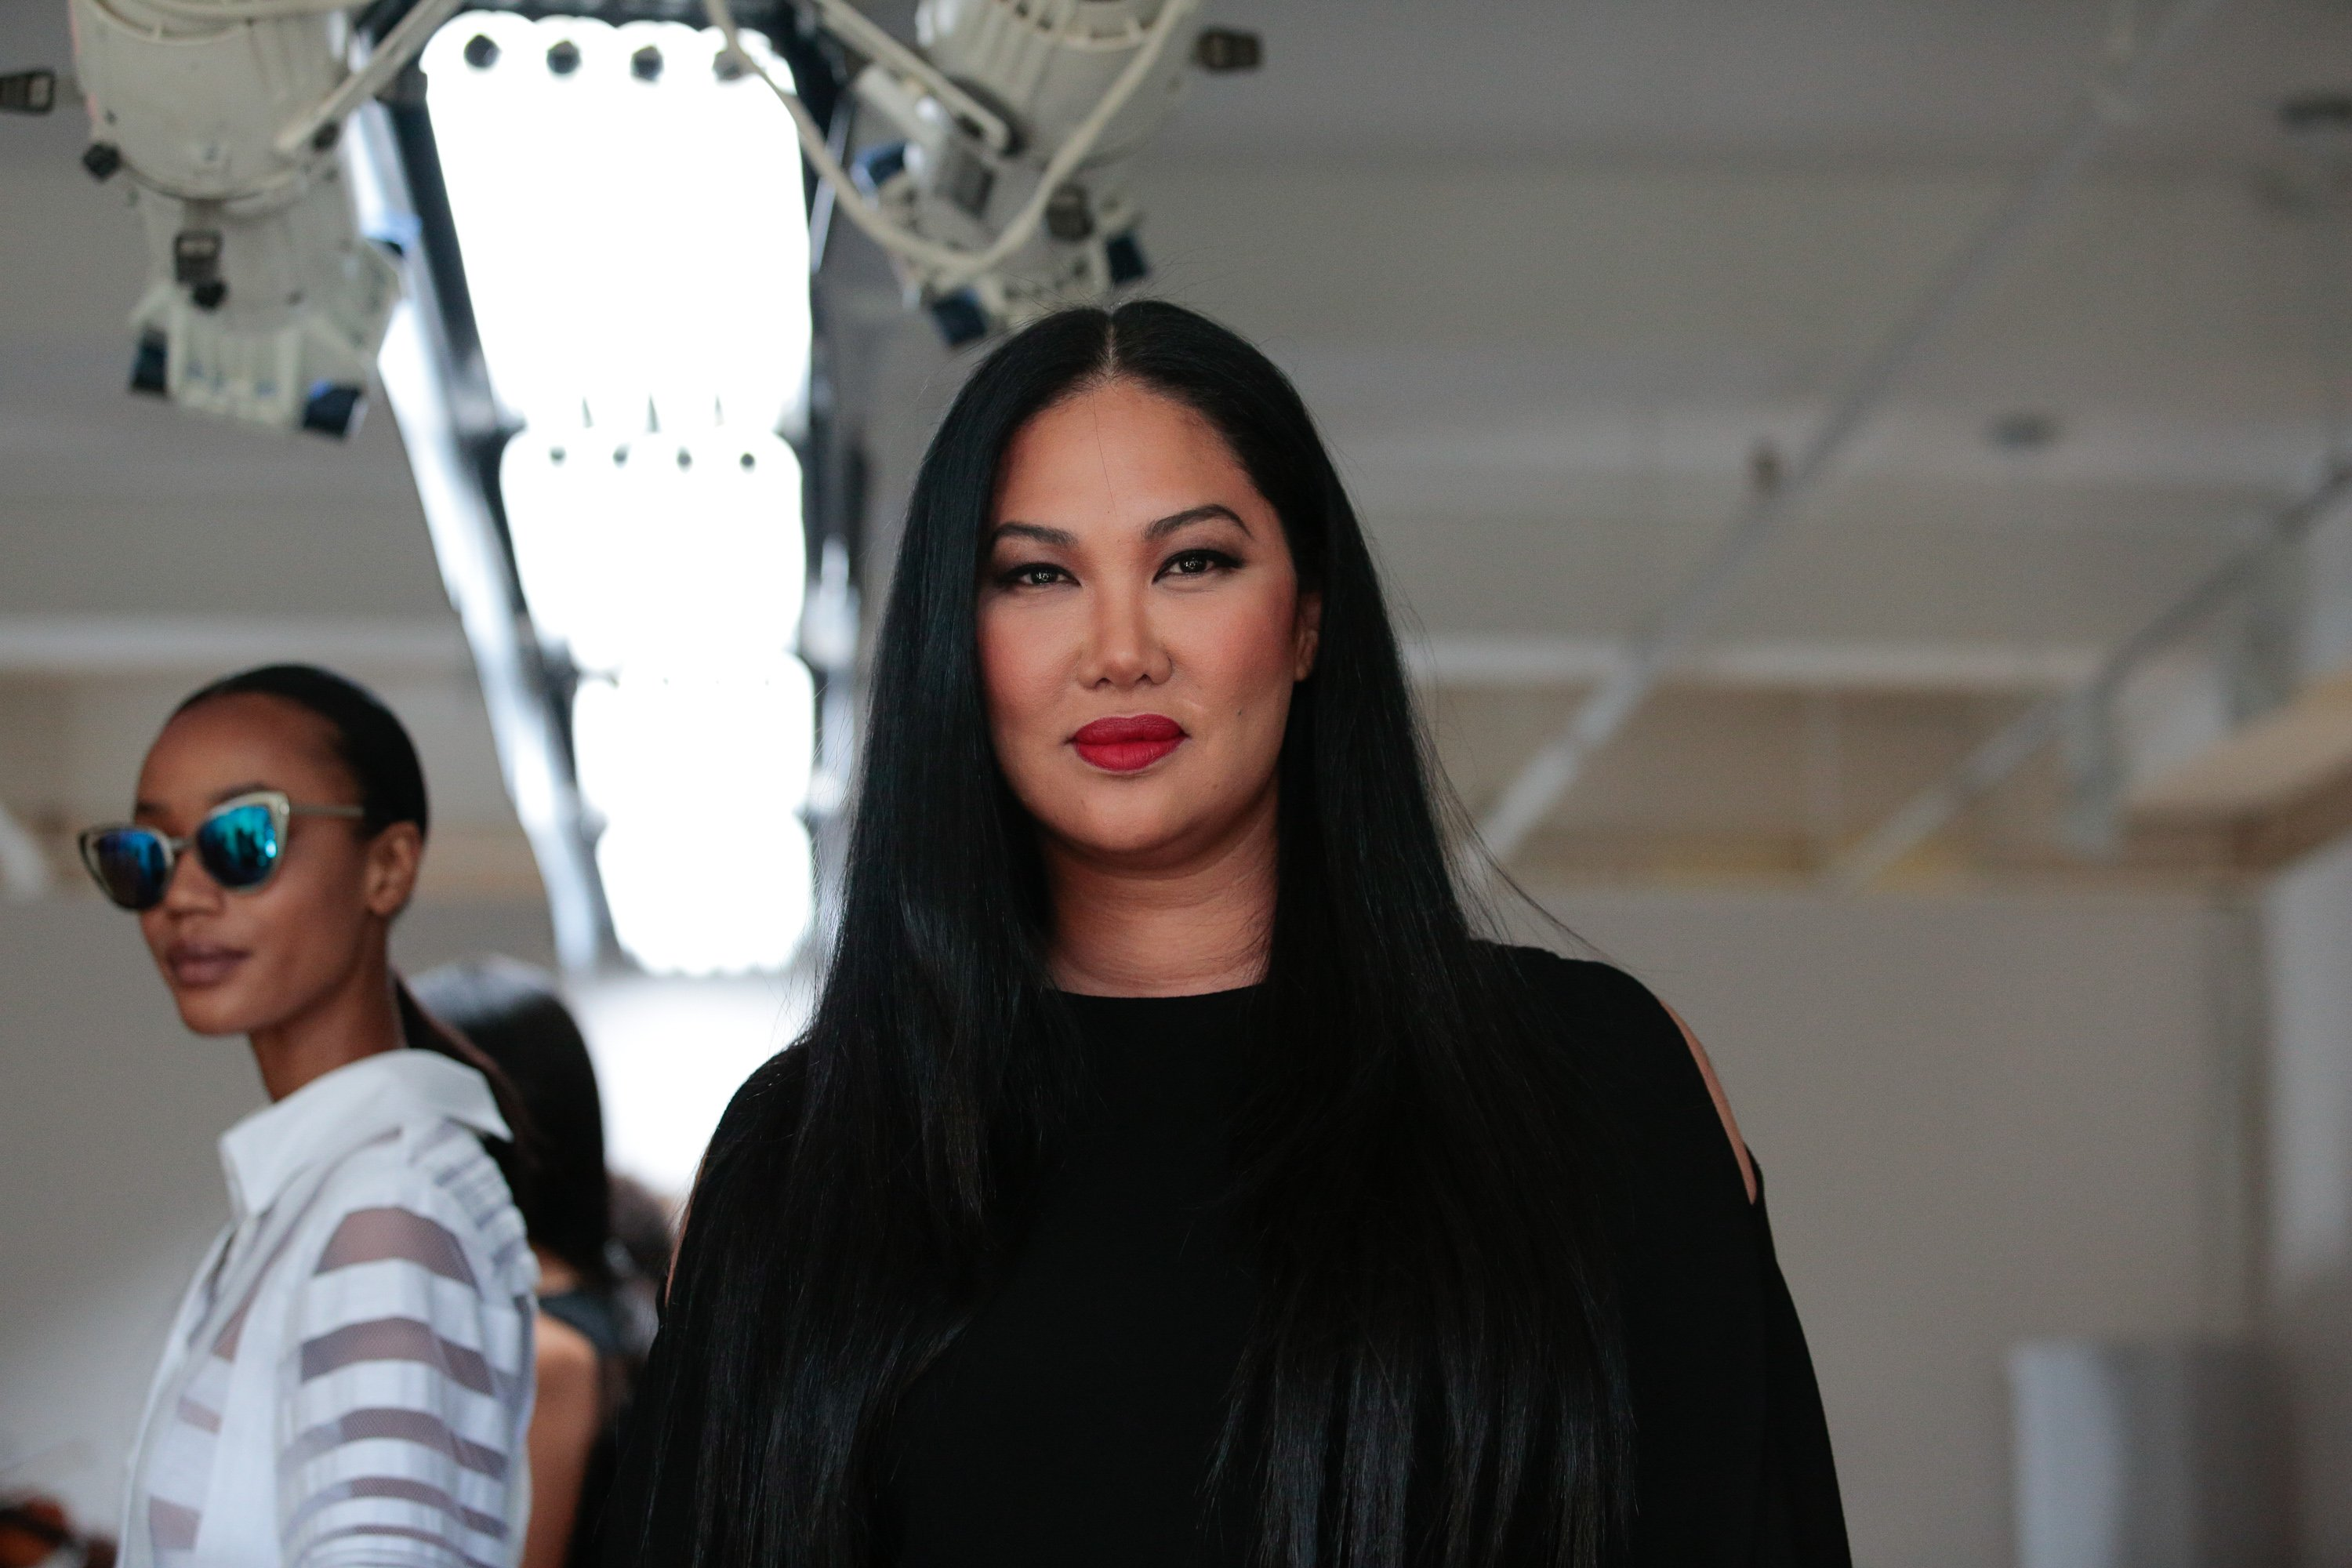 Kimora Lee Simmons at New York Fashion Week at The Gallery, Skylight at Clarkson Sq on September 14, 2016 in New York City.   Source: Getty Images